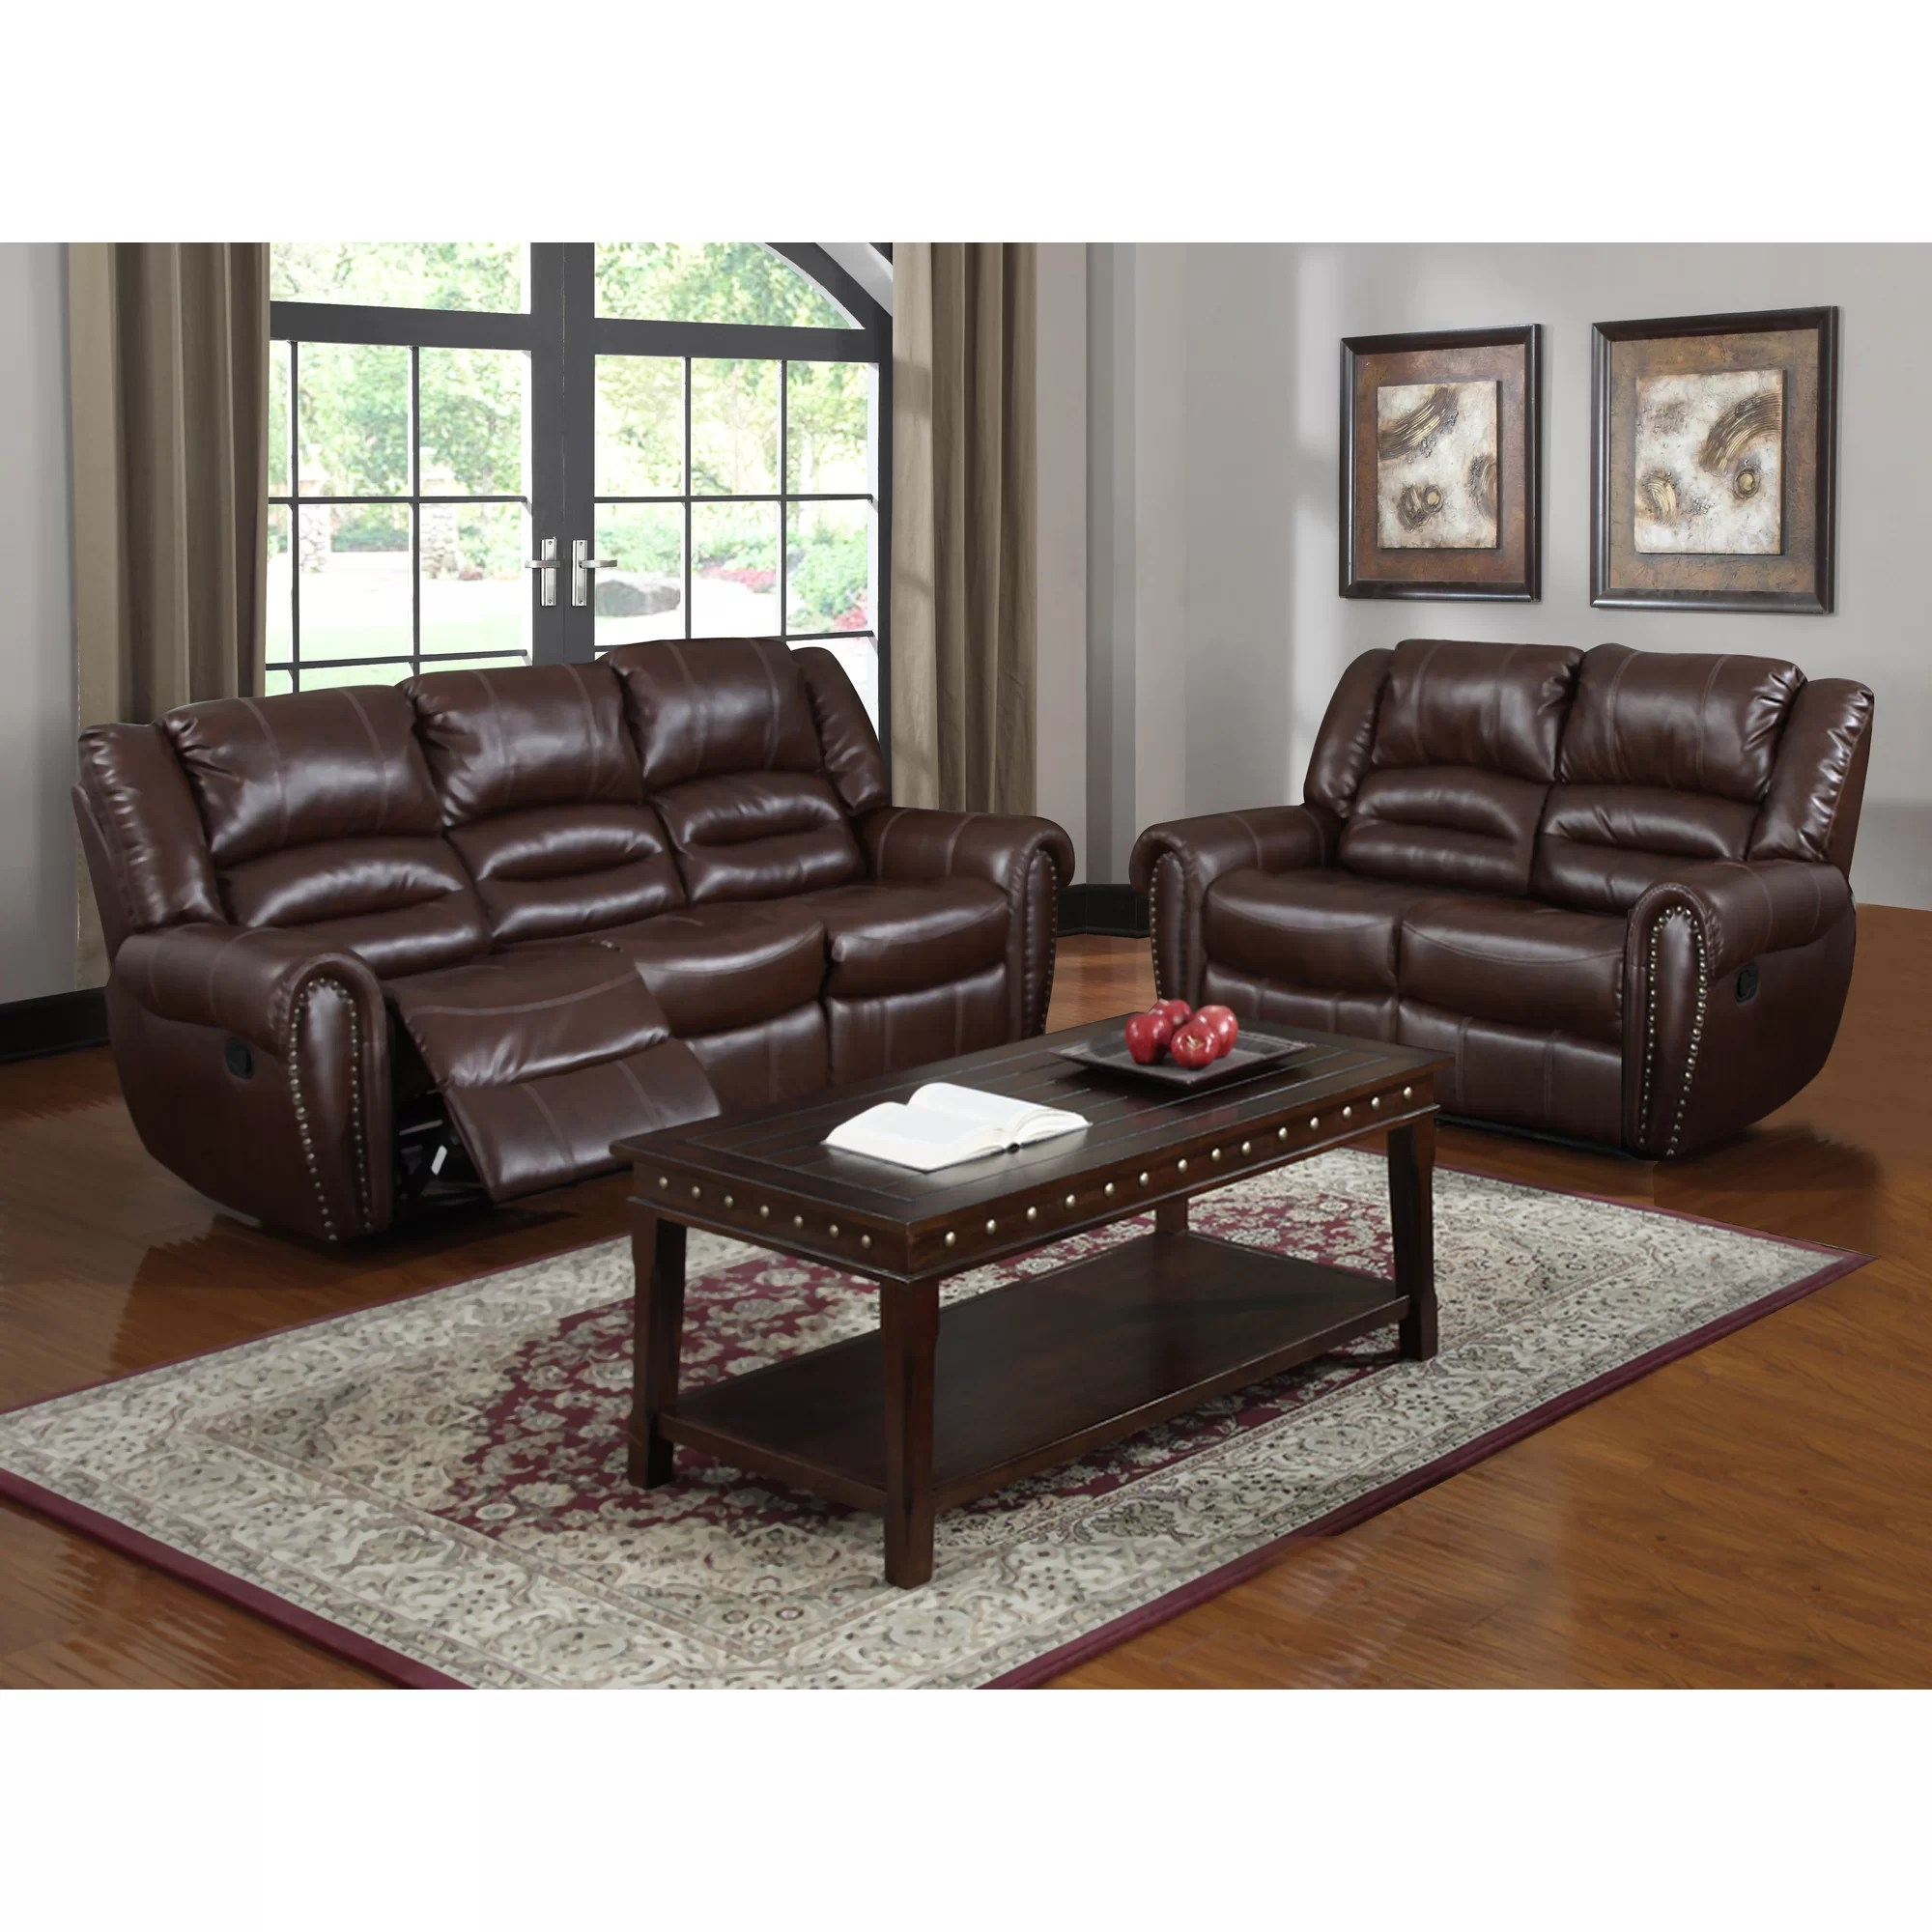 Brady Leather Sofa Brady Red Brown Leather Living Room Set